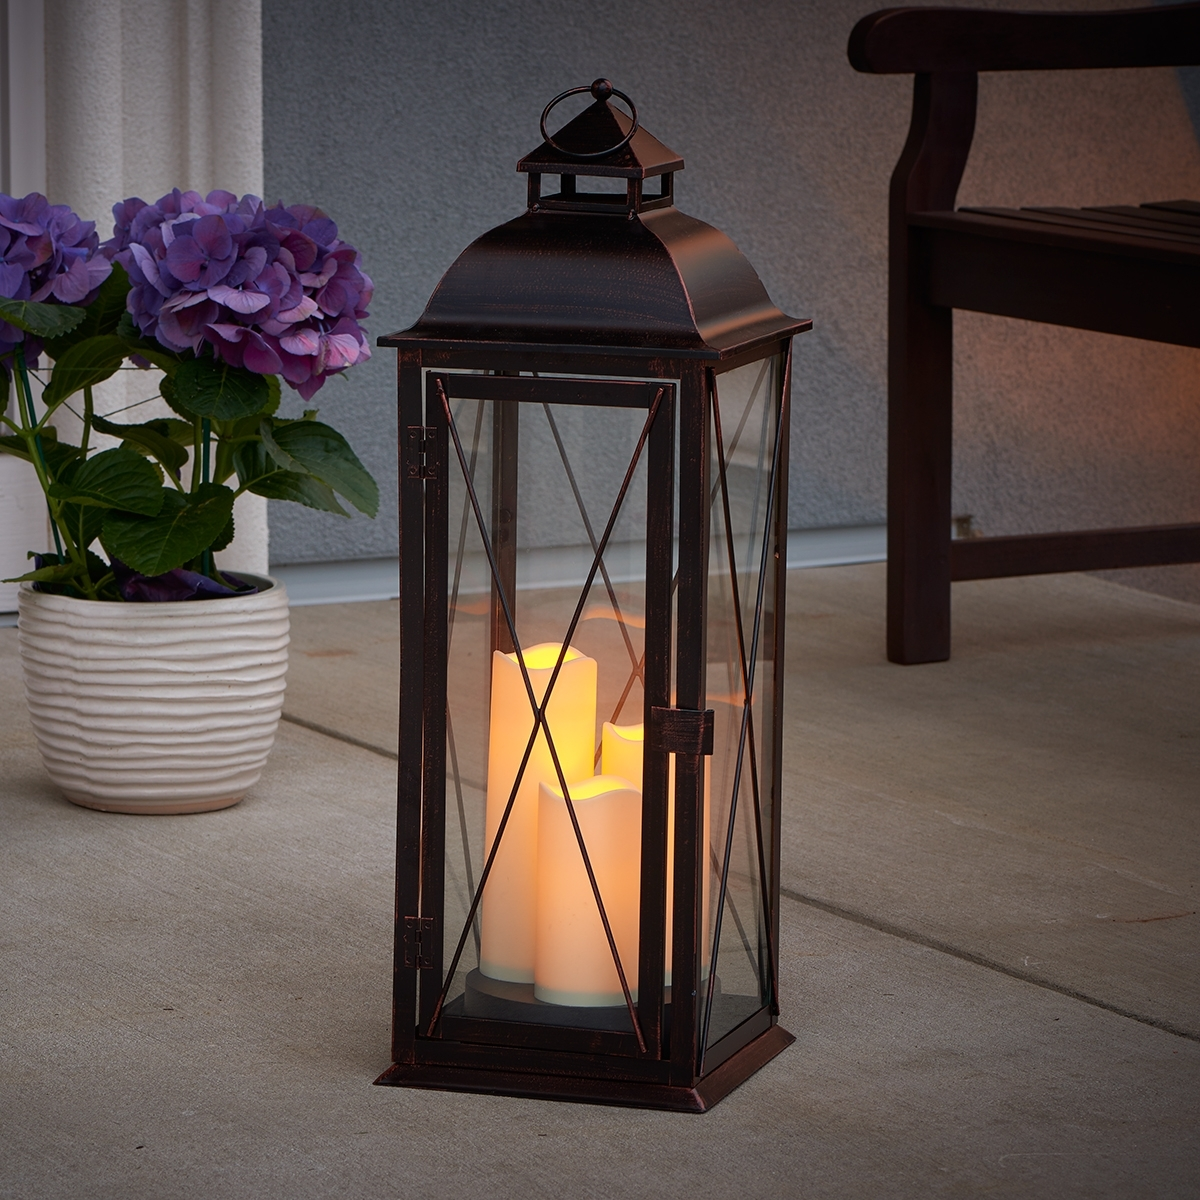 Salerno Triple Led Candle Lantern | Antique Brown | Smart Living for Outdoor Lanterns With Timers (Image 15 of 20)